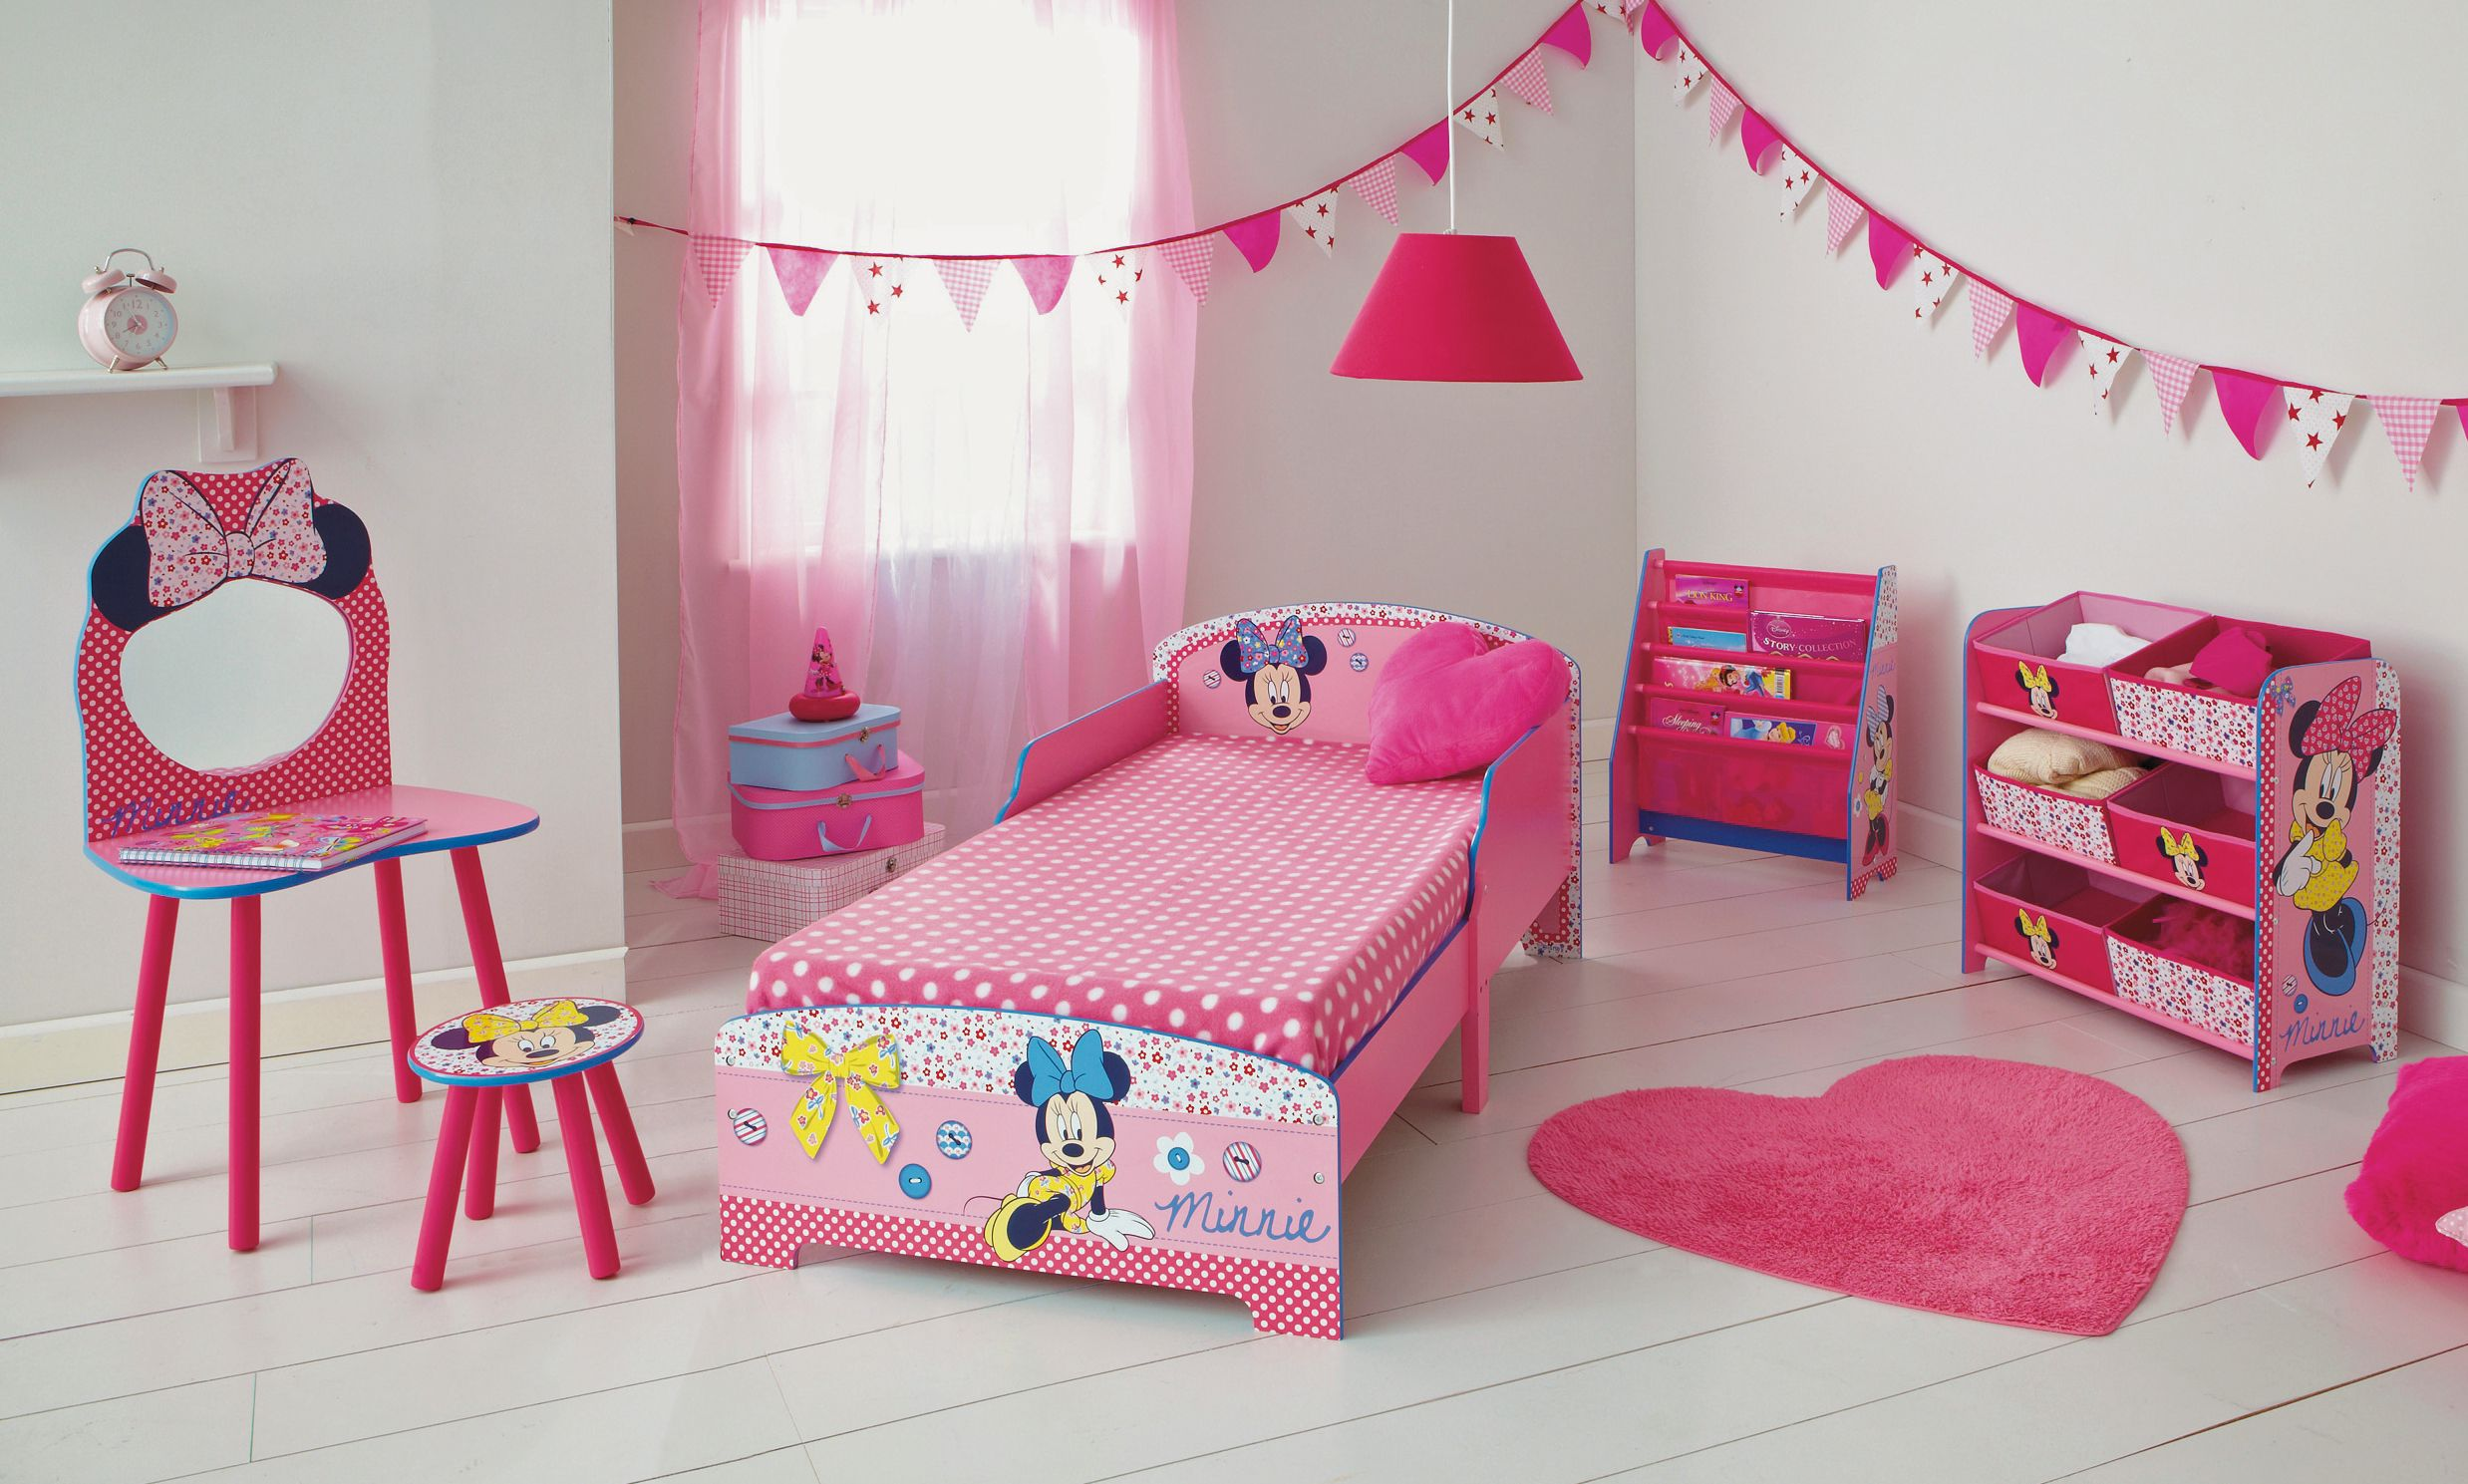 Minnie mouse theme bedroom | Room Ideas for London | Pinterest ...